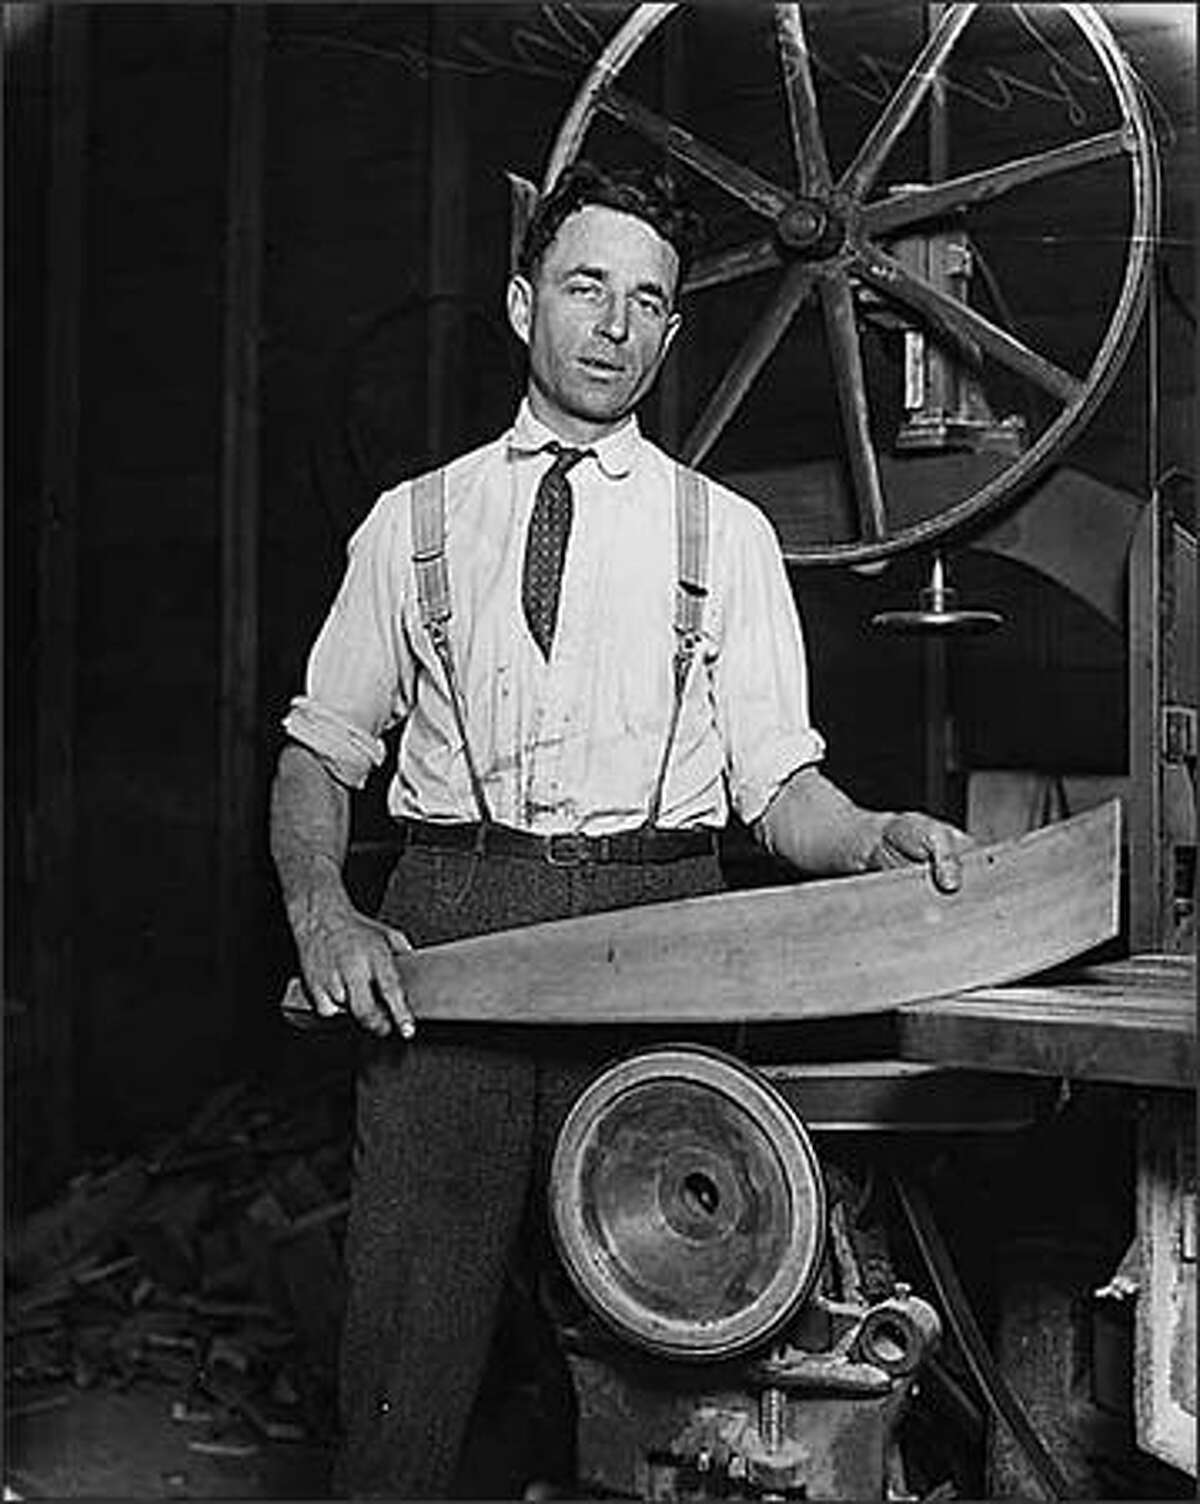 George Pocock, rowing shell builder, Seattle, ca. 1928. Pocock and his brother Dick came to America after finishing apprenticeships building boats and racing sculls on the River Thames in England. While possessing no education beyond age 14, George embraced all aspects of collegiate rowing and was instrumental in the foundation of the University of Washington's early rowing years. Considered a master boat-builder, he implemented design innovations which greatly improved his boats' performance over his competitors. Possessing a deep appreciation for the art and beauty of rowing, he continued boat-building for 50 years, providing shells for most racing colleges in the country and many overseas as well. (Seattle Post-Intelligencer Collection, Museum of History & Industry 1986.5G.2411)